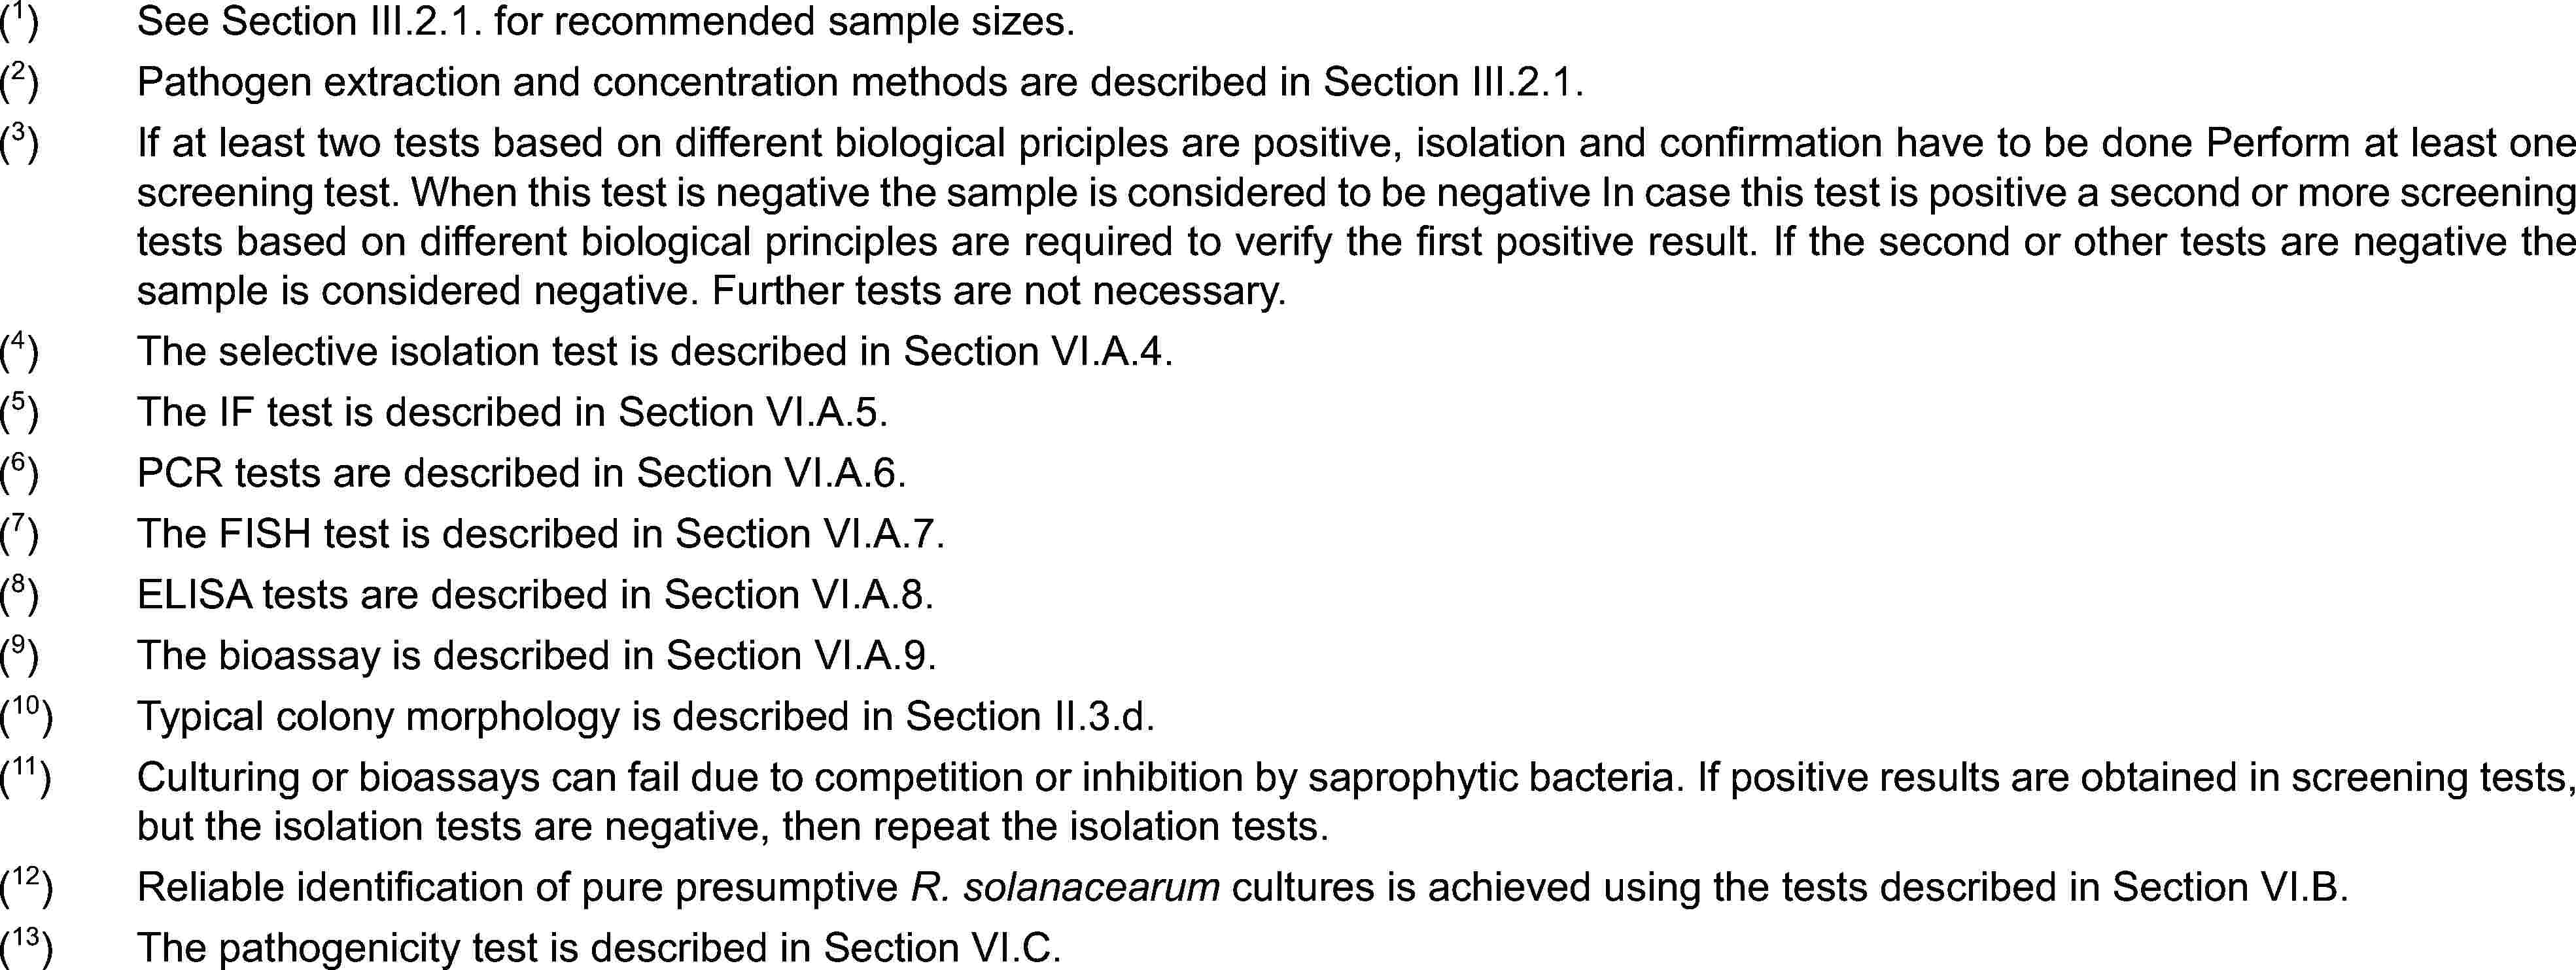 (1)See Section III.2.1. for recommended sample sizes.(2)Pathogen extraction and concentration methods are described in Section III.2.1.(3)If at least two tests based on different biological priciples are positive, isolation and confirmation have to be done Perform at least one screening test. When this test is negative the sample is considered to be negative In case this test is positive a second or more screening tests based on different biological principles are required to verify the first positive result. If the second or other tests are negative the sample is considered negative. Further tests are not necessary.(4)The selective isolation test is described in Section VI.A.4.(5)The IF test is described in Section VI.A.5.(6)PCR tests are described in Section VI.A.6.(7)The FISH test is described in Section VI.A.7.(8)ELISA tests are described in Section VI.A.8.(9)The bioassay is described in Section VI.A.9.(10)Typical colony morphology is described in Section II.3.d.(11)Culturing or bioassays can fail due to competition or inhibition by saprophytic bacteria. If positive results are obtained in screening tests, but the isolation tests are negative, then repeat the isolation tests.(12)Reliable identification of pure presumptive R. solanacearum cultures is achieved using the tests described in Section VI.B.(13)The pathogenicity test is described in Section VI.C.